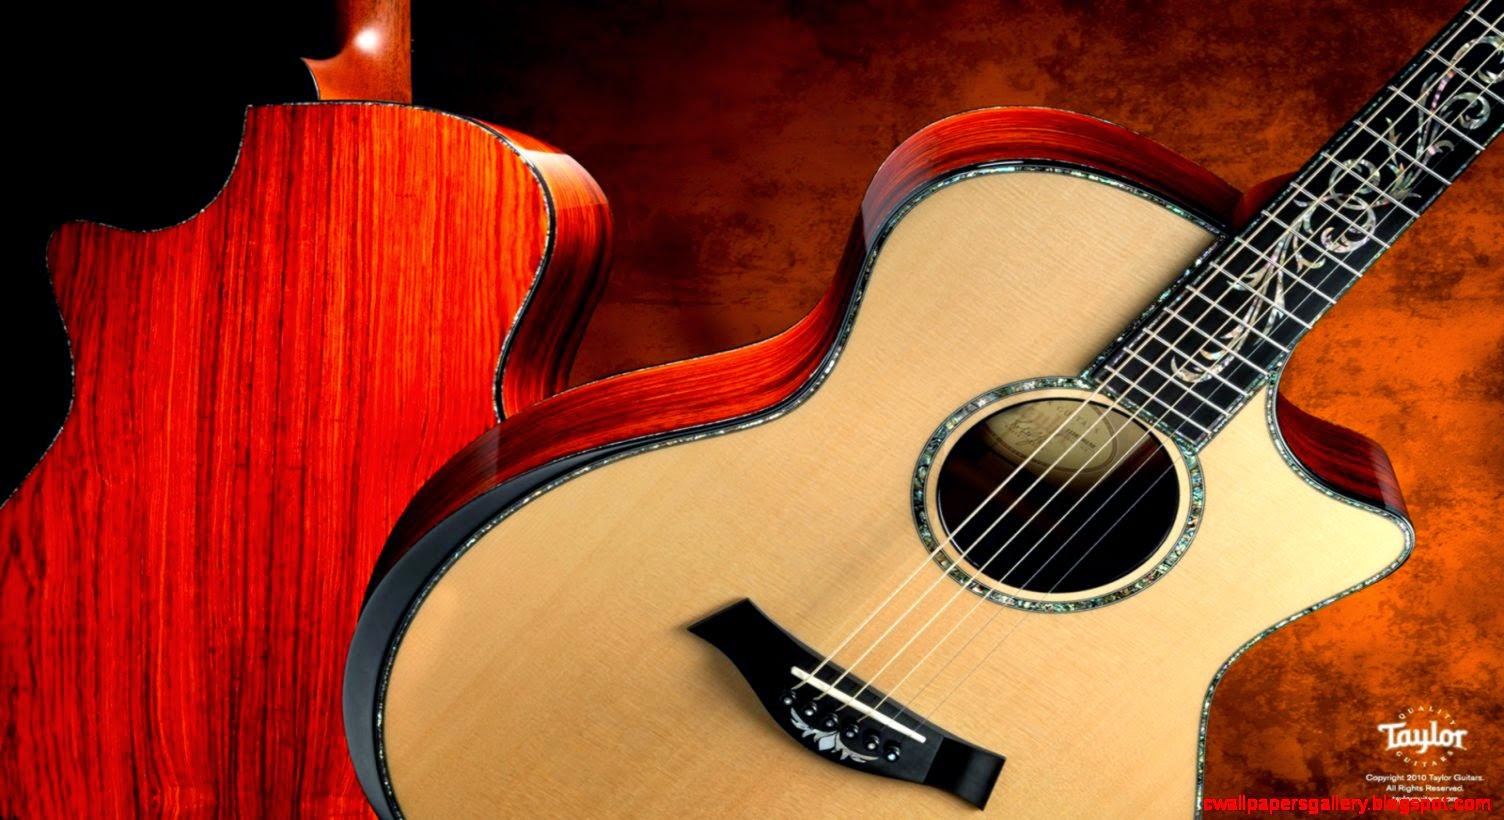 Taylor Guitar Desktop Wallpaper Wallpapers Gallery 1504x820